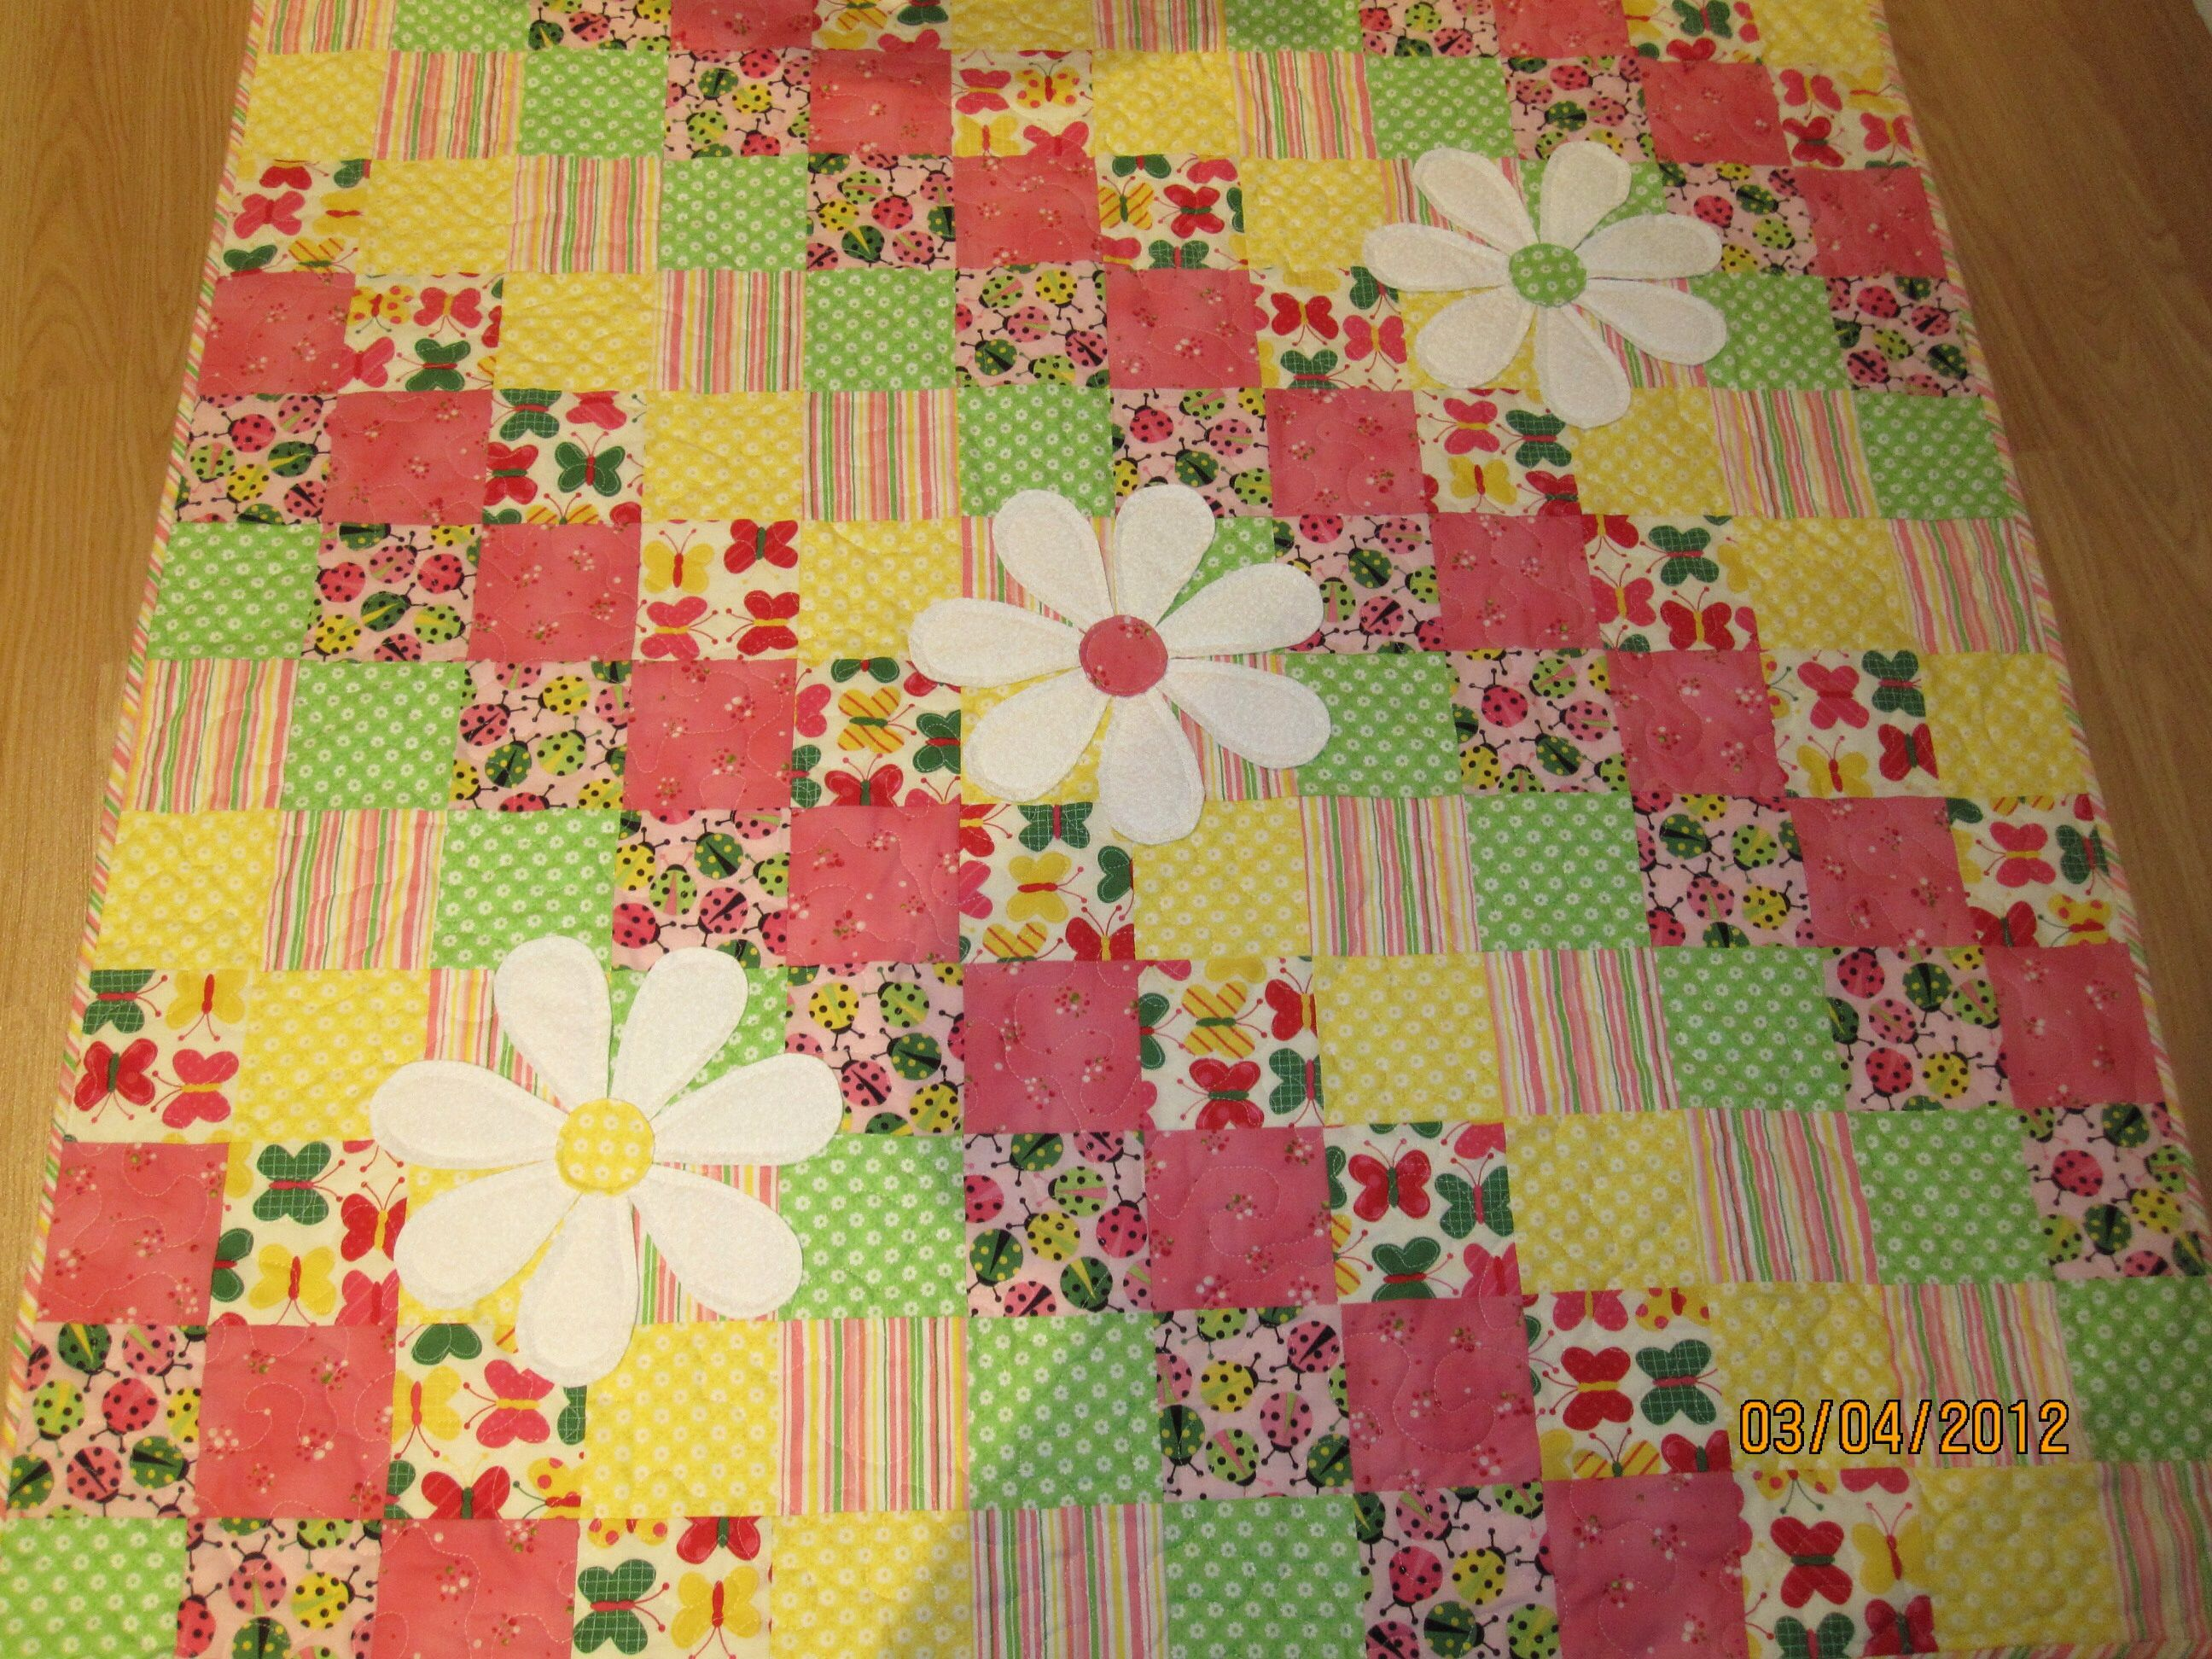 I made this quilt for my niece's baby girl. Each petal of the daisy was made double sided, rights sides together, clipped along the top curve and then turned right side out so the raw edges were inside the petal. They were sewn individually to the quilt top. The centre circle was done the same way and added to cover the ends of the petals.